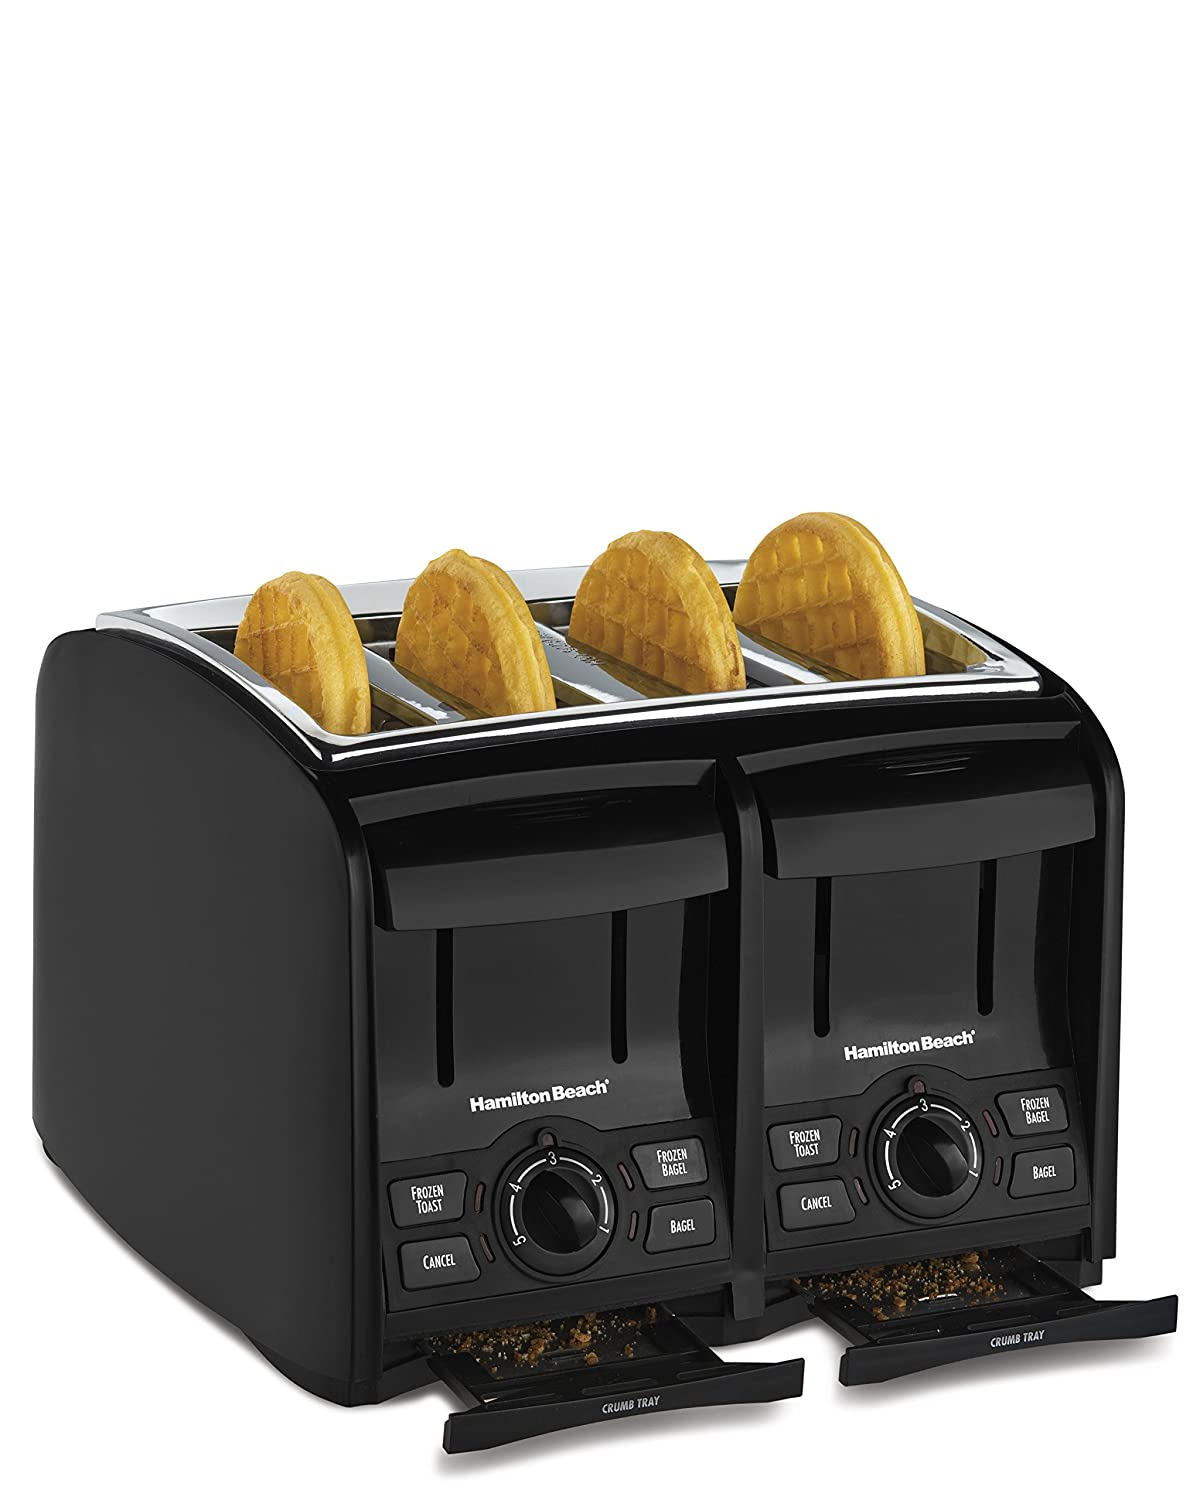 2. Hamilton Beach 4 Slice Cool Touch Toaster (24121)